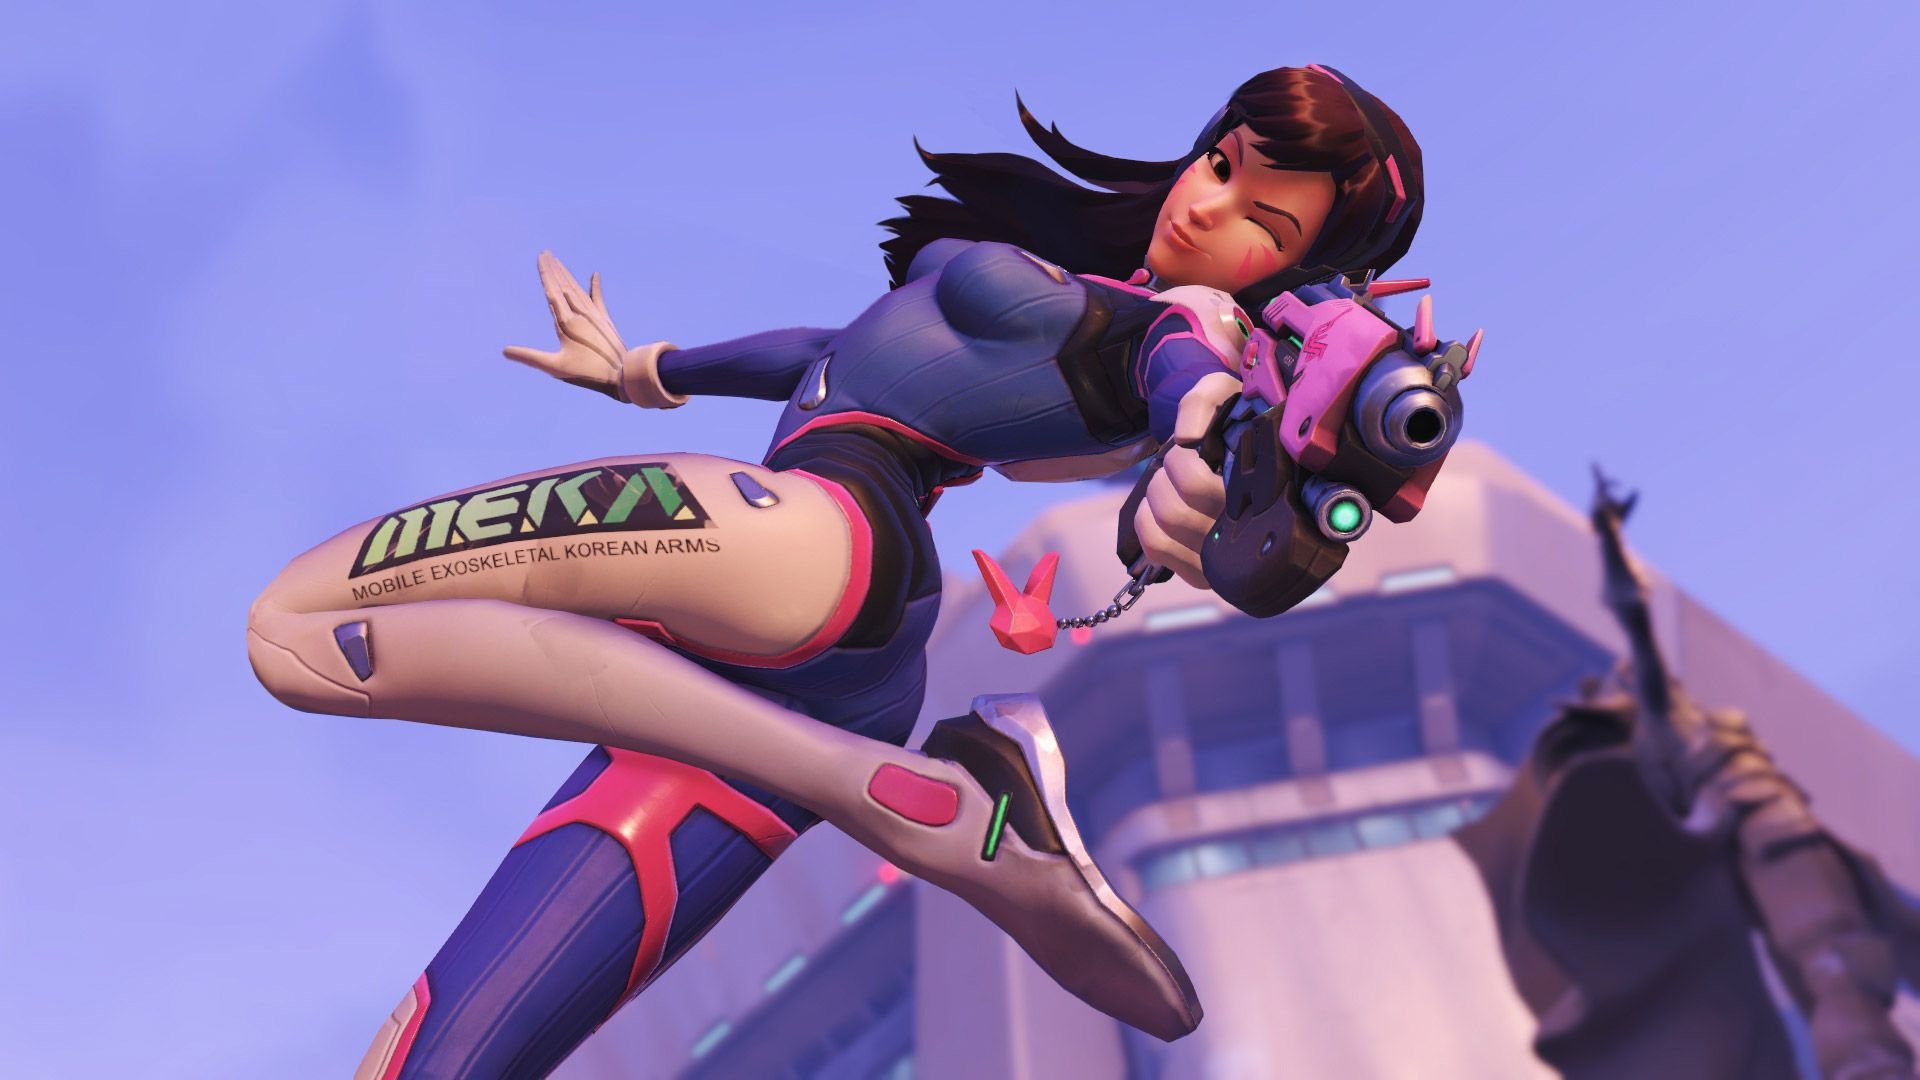 Blizzard Explain How Overwatch Picks Play of the Game Moments DVa 005.0